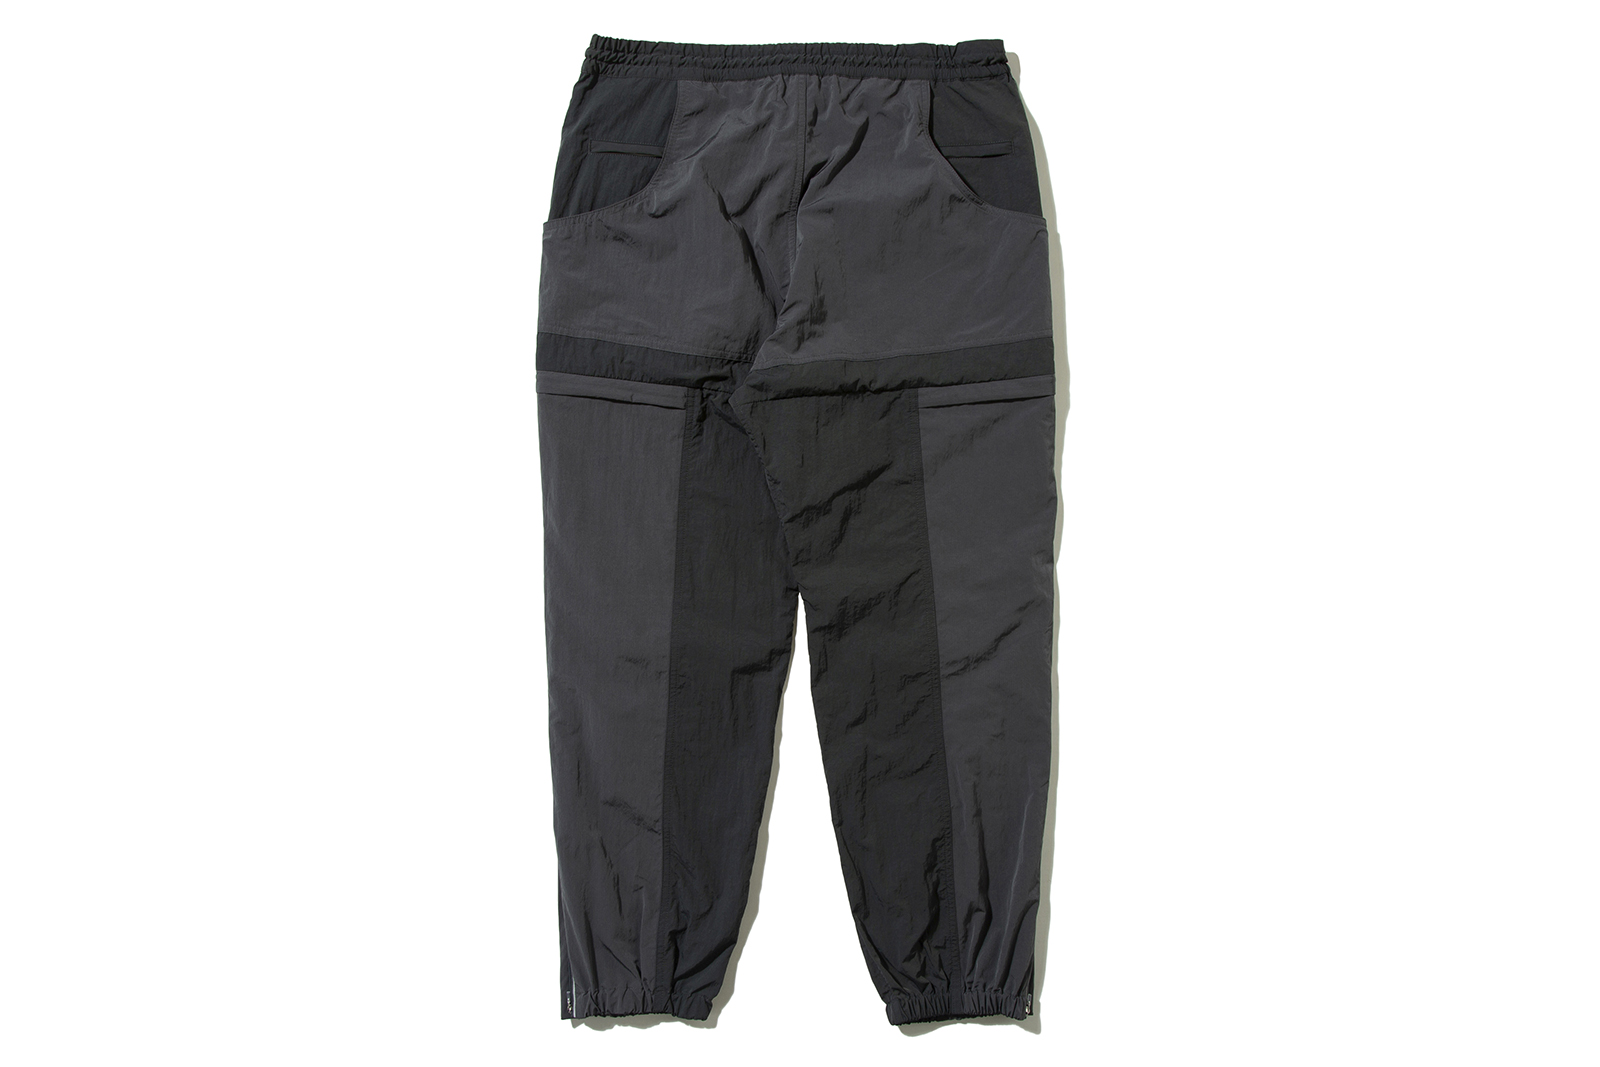 6-pocket-nylon-track-pant-graphite_p1